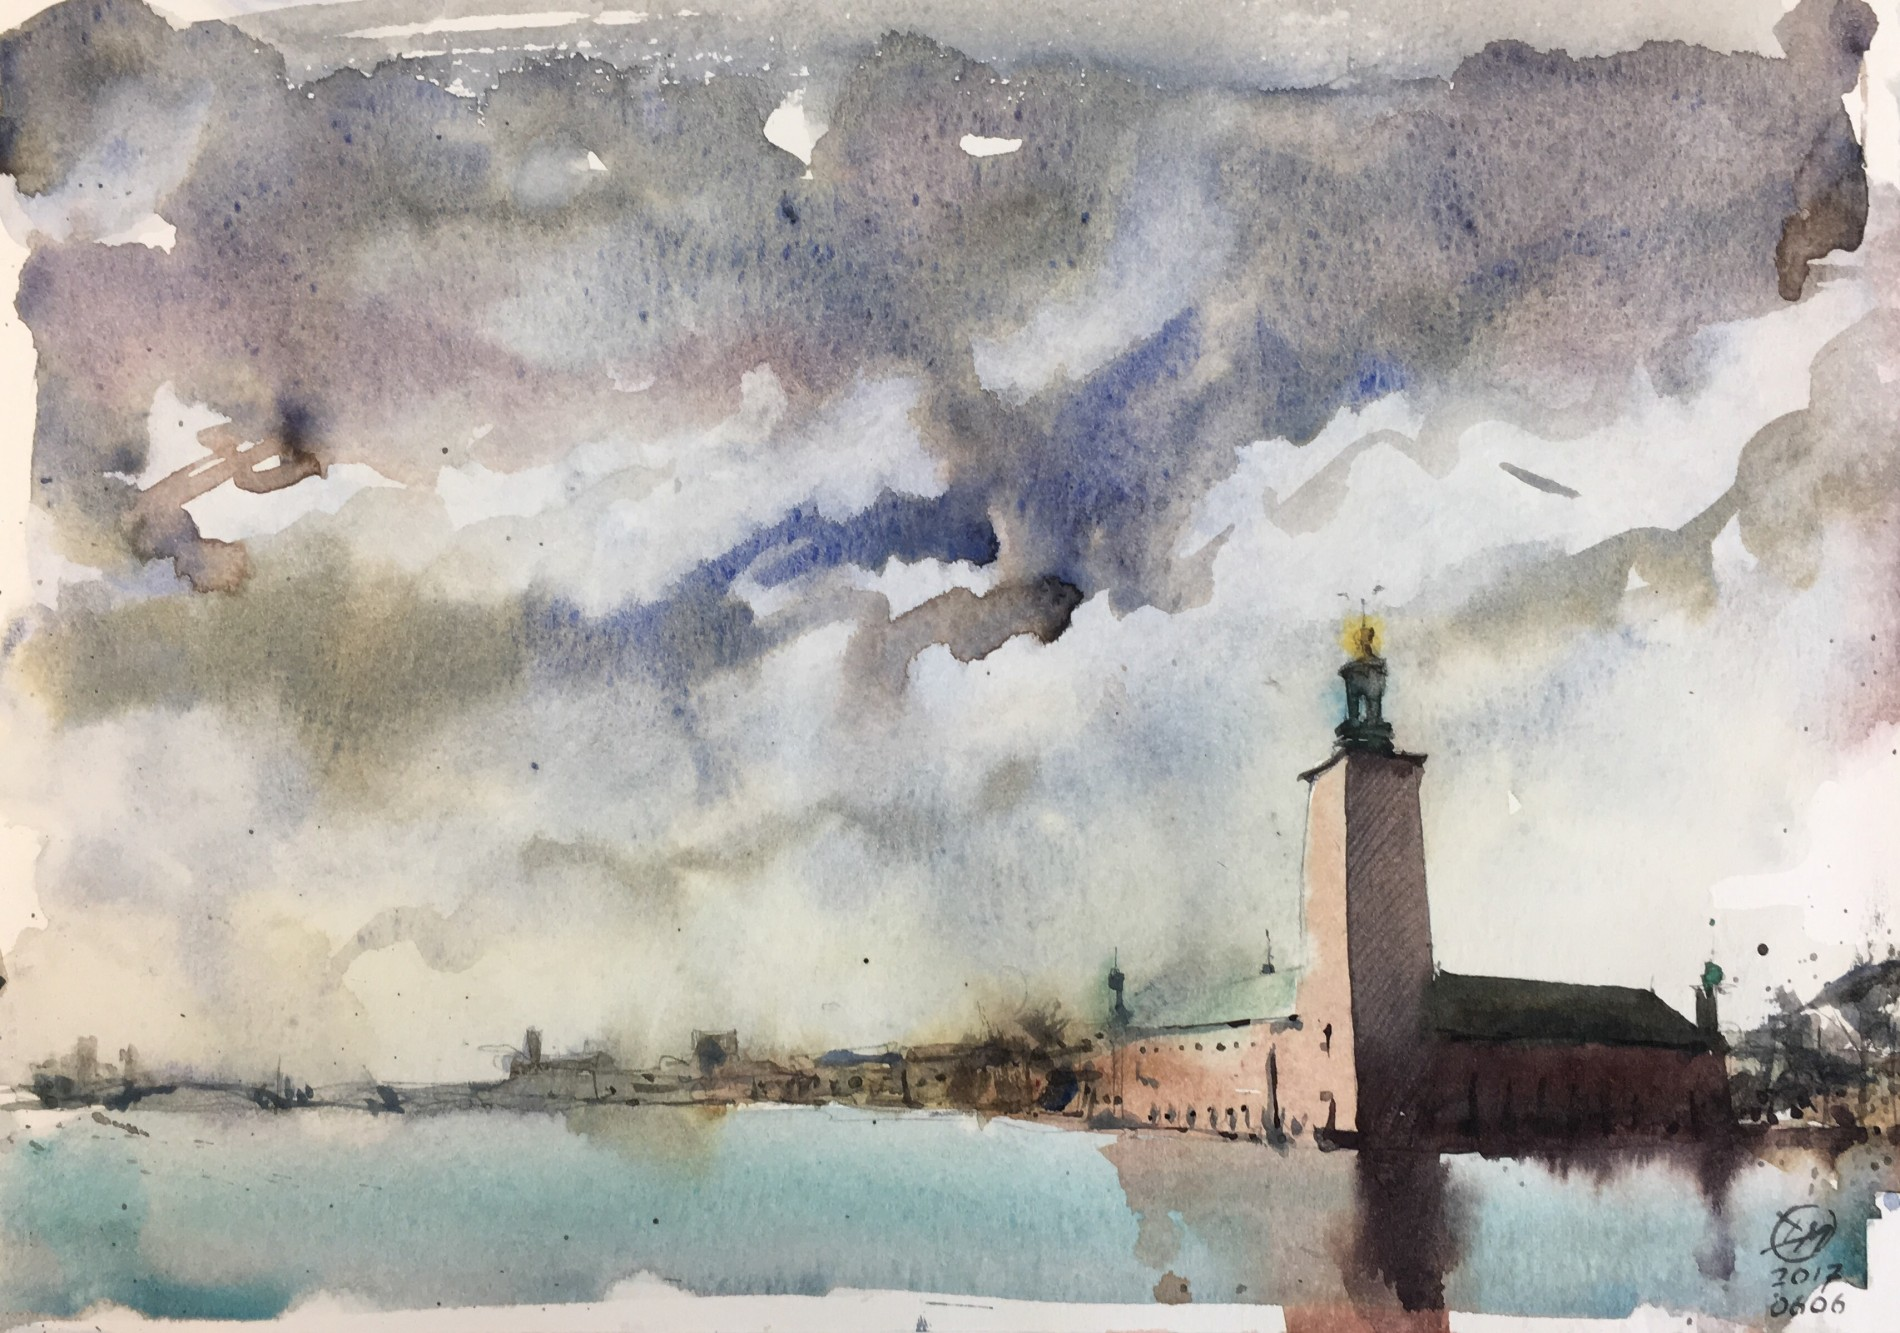 Stadshuset - A watercolour sketch of Stockholm's town hall